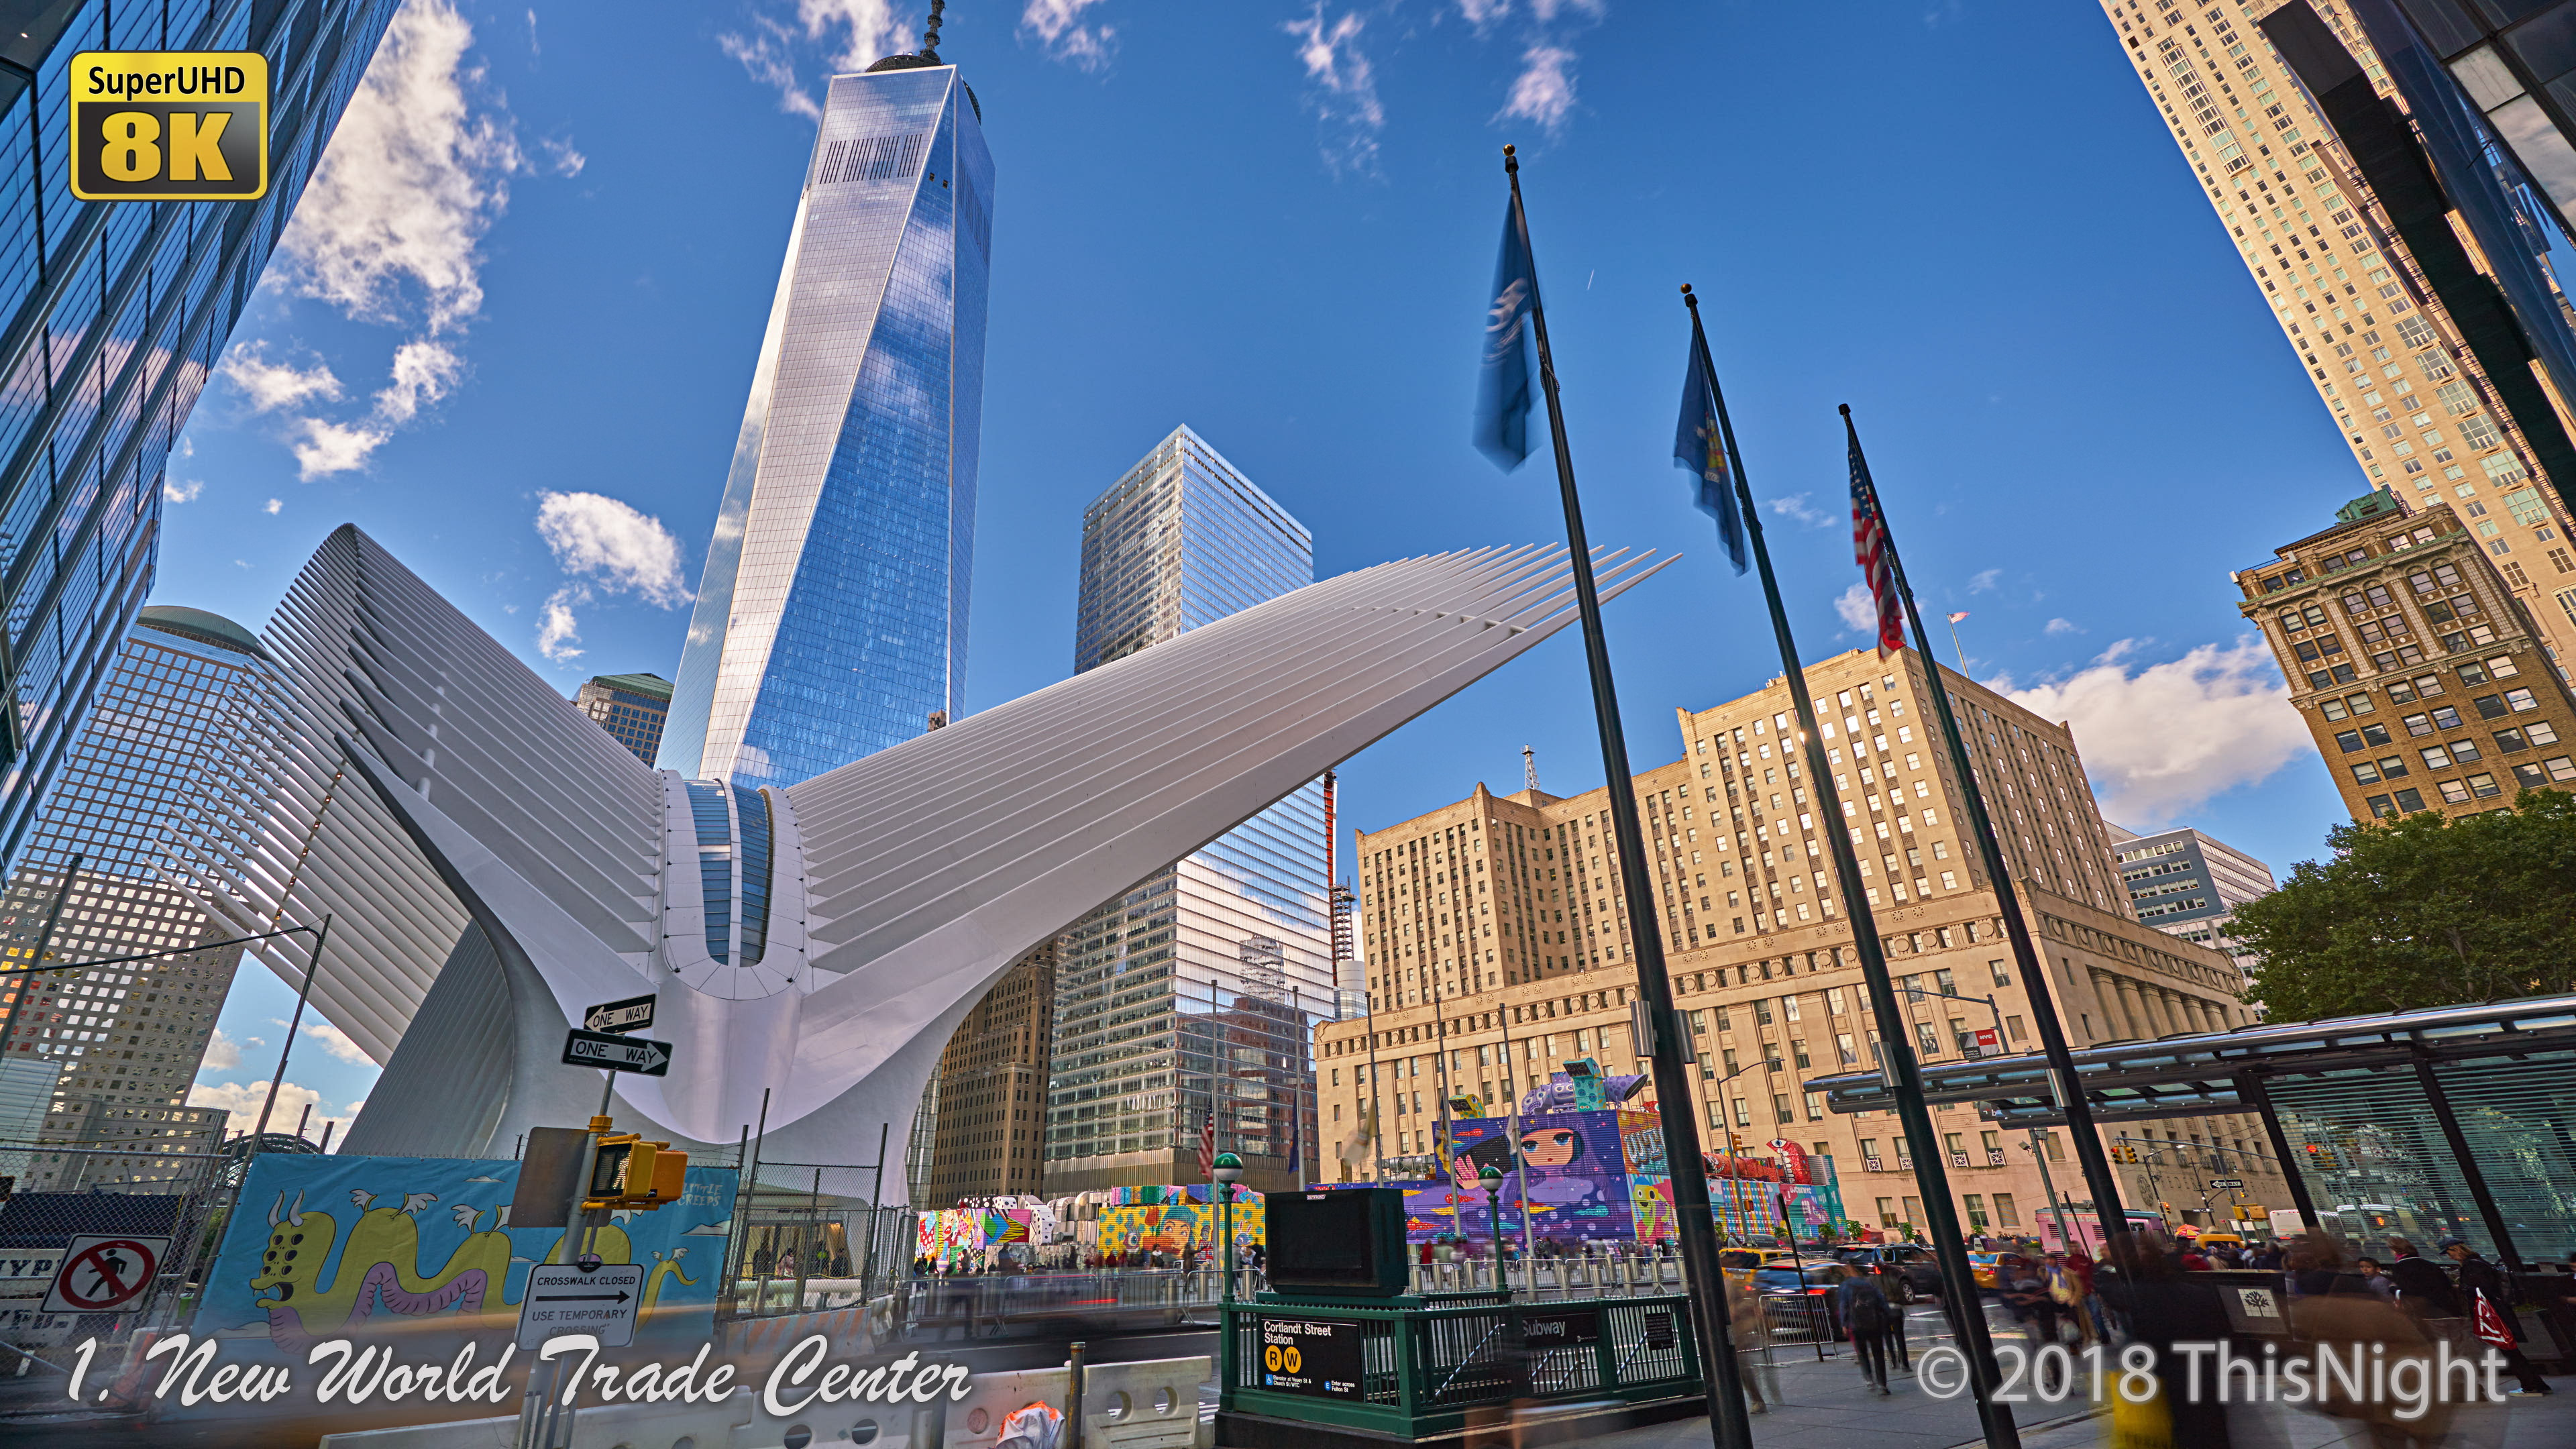 Freedom Tower.New World Trade Center